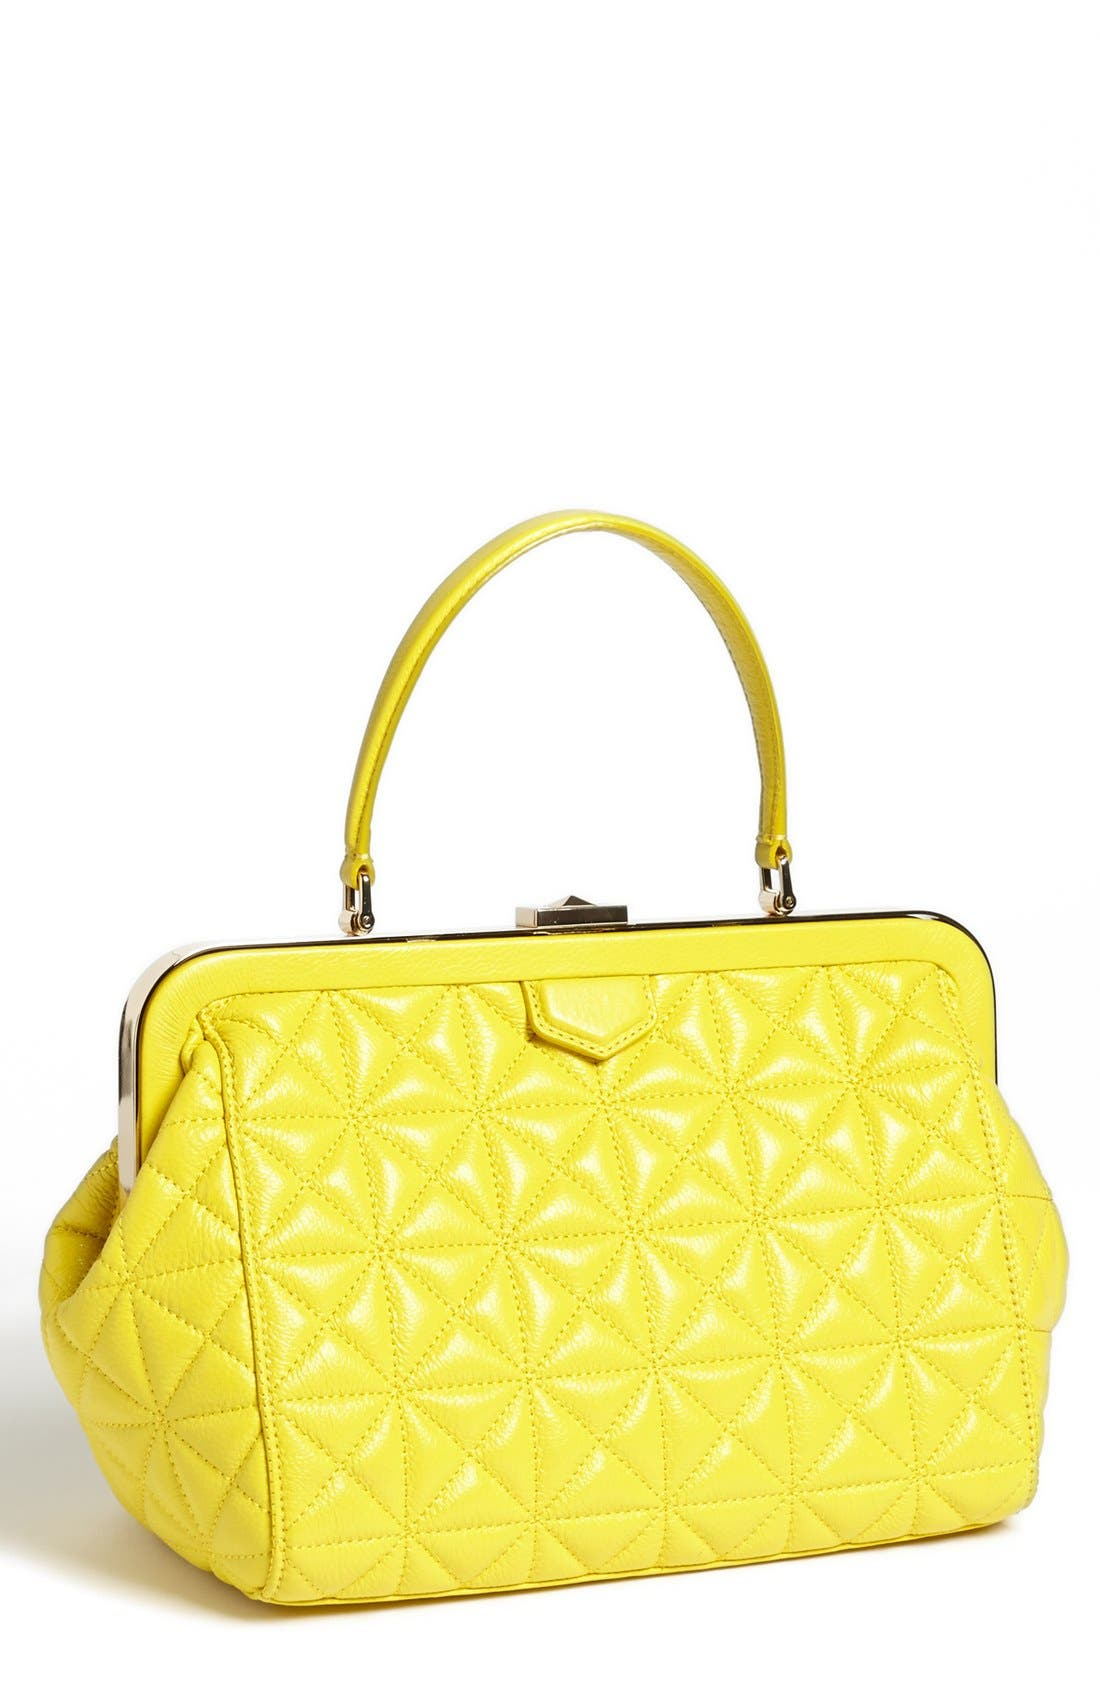 Main Image - kate spade new york 'sedgwick place -emilia' handbag